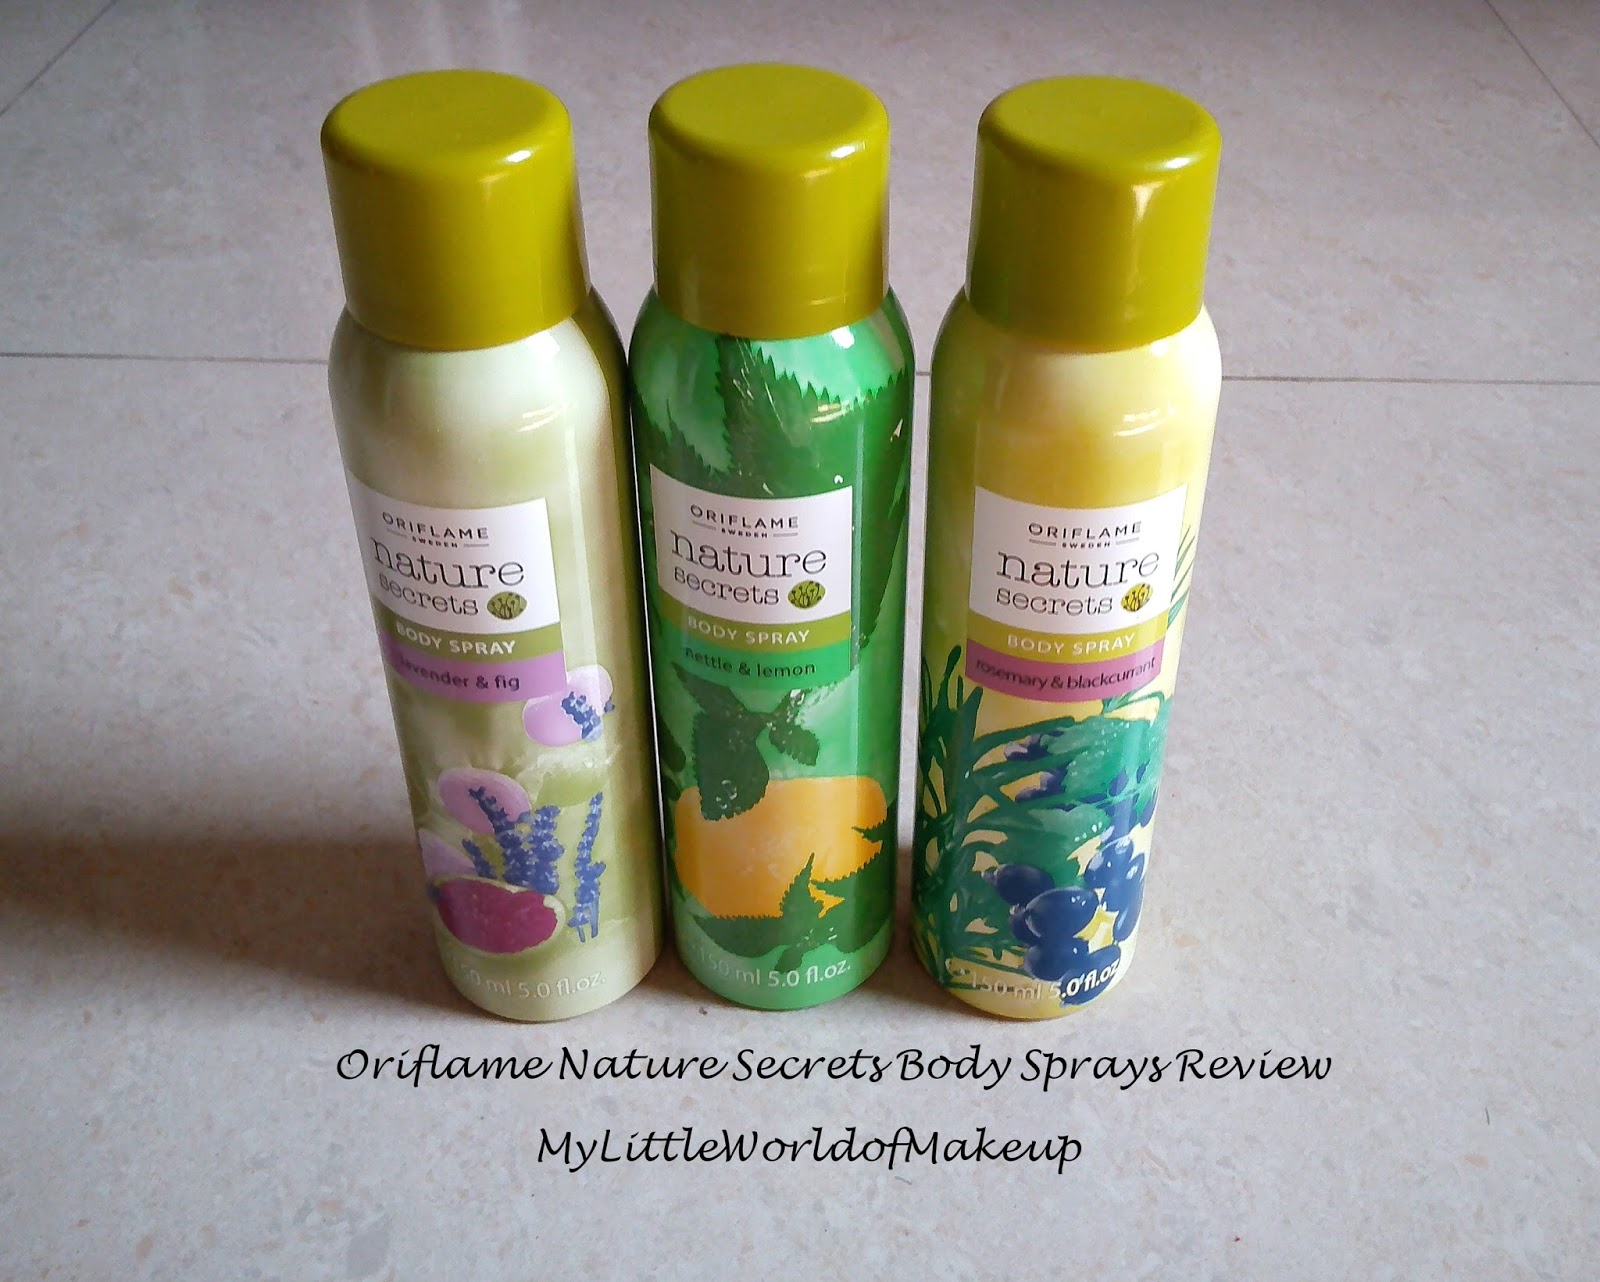 Oriflame Nature Secrets Body Spray